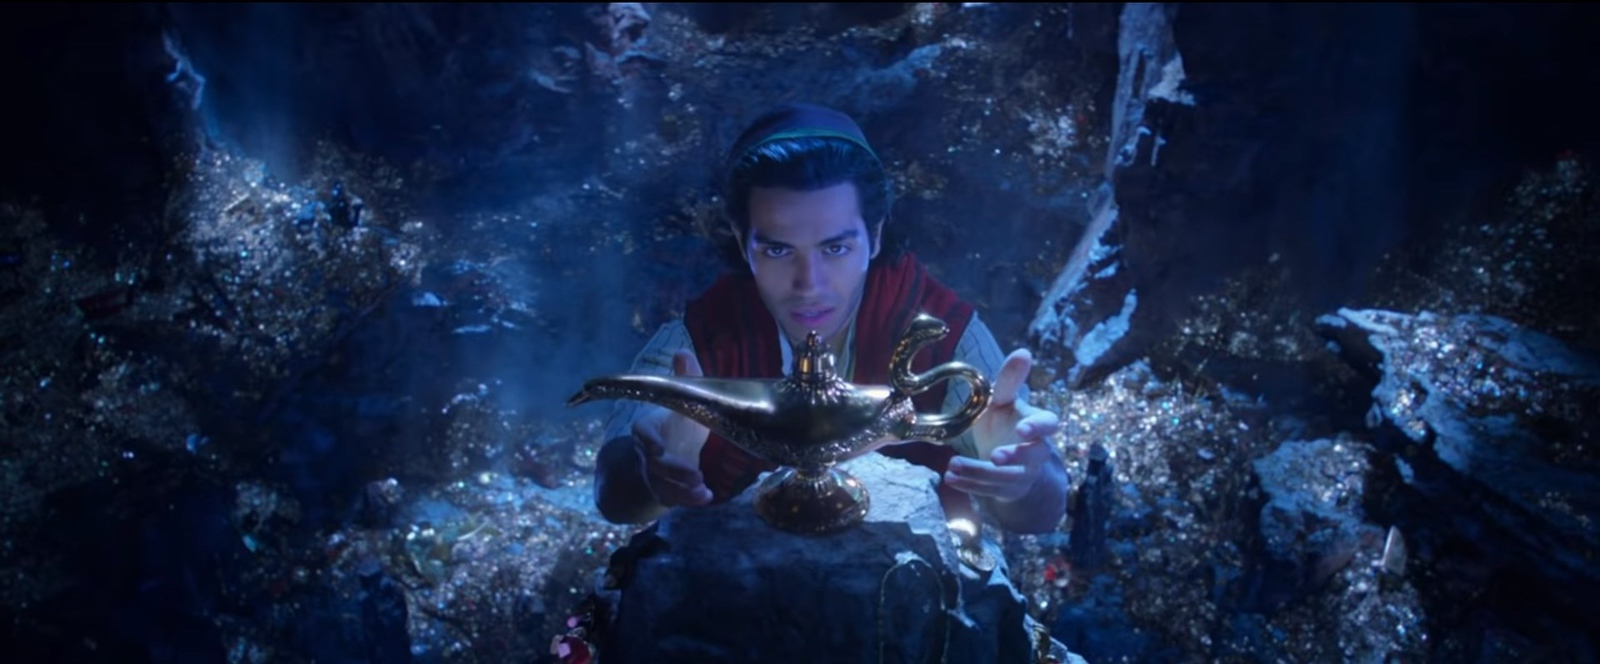 FIRST LOOK: Live action ALADDIN unveils teaser